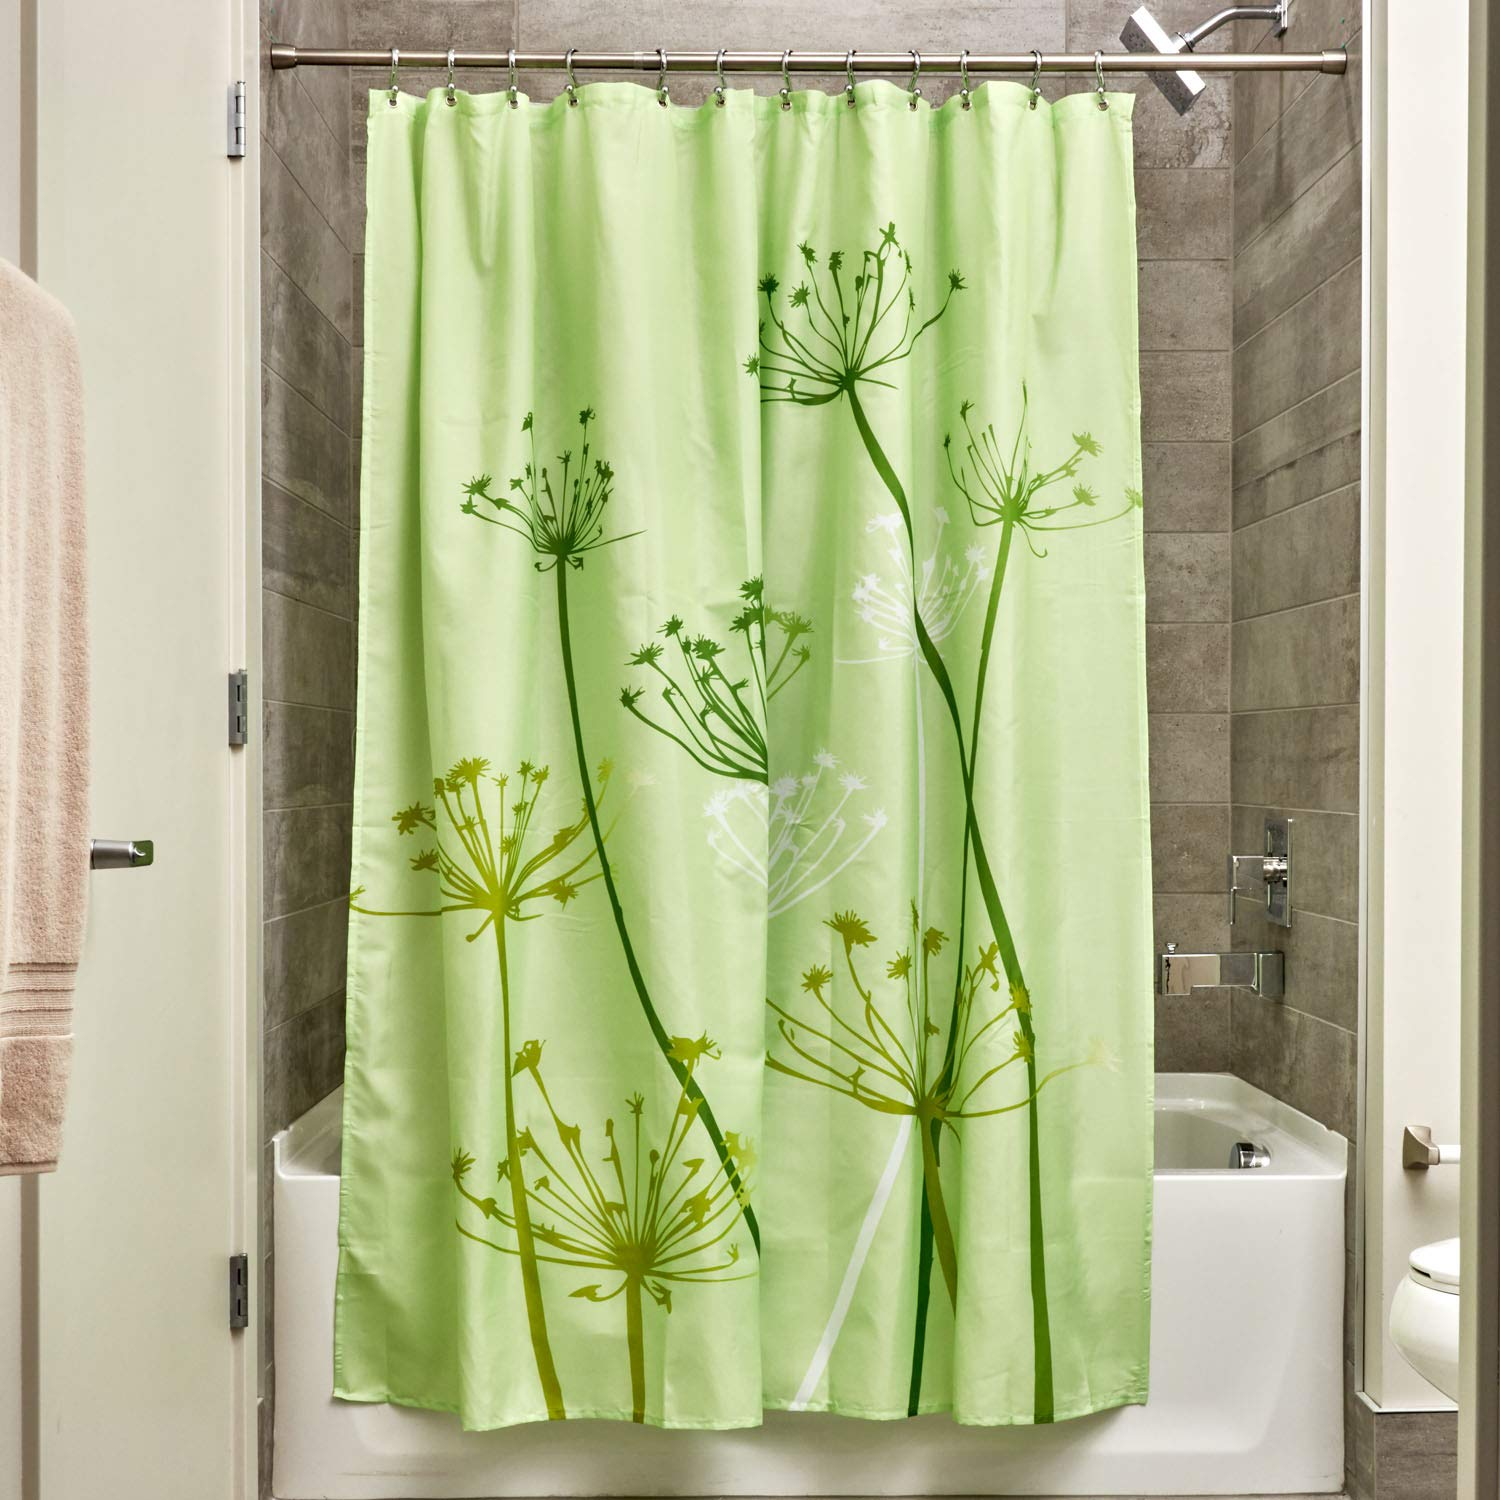 InterDesign Thistle Fabric Shower Curtain, 72x72-Inch, Gray and Purple 37229